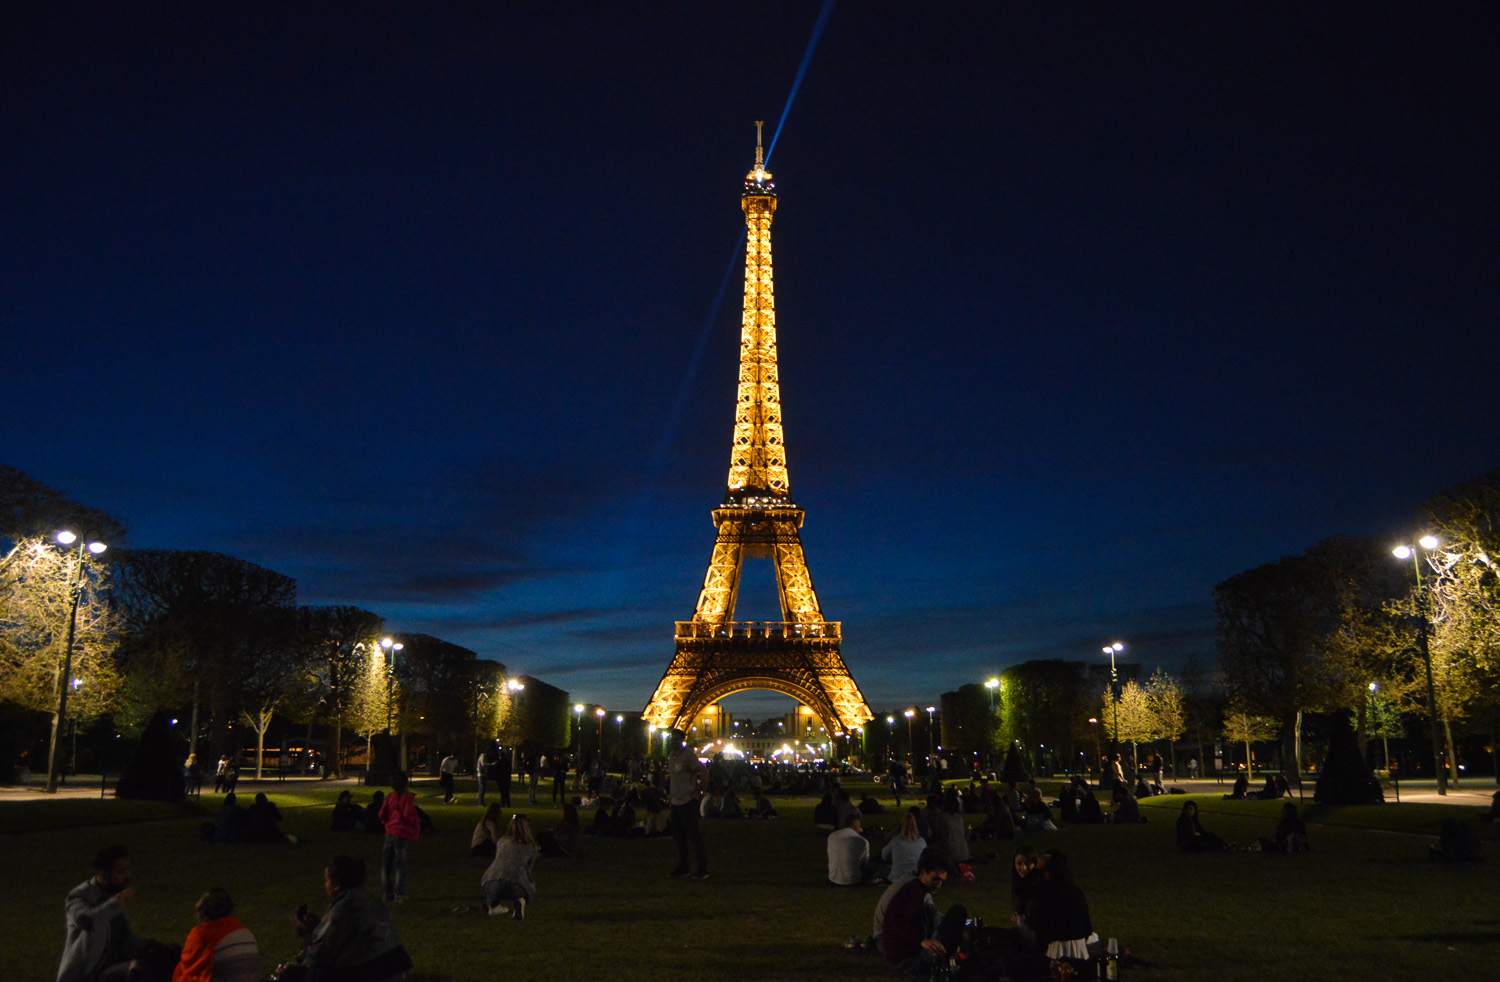 eiffel_tower_paris_night